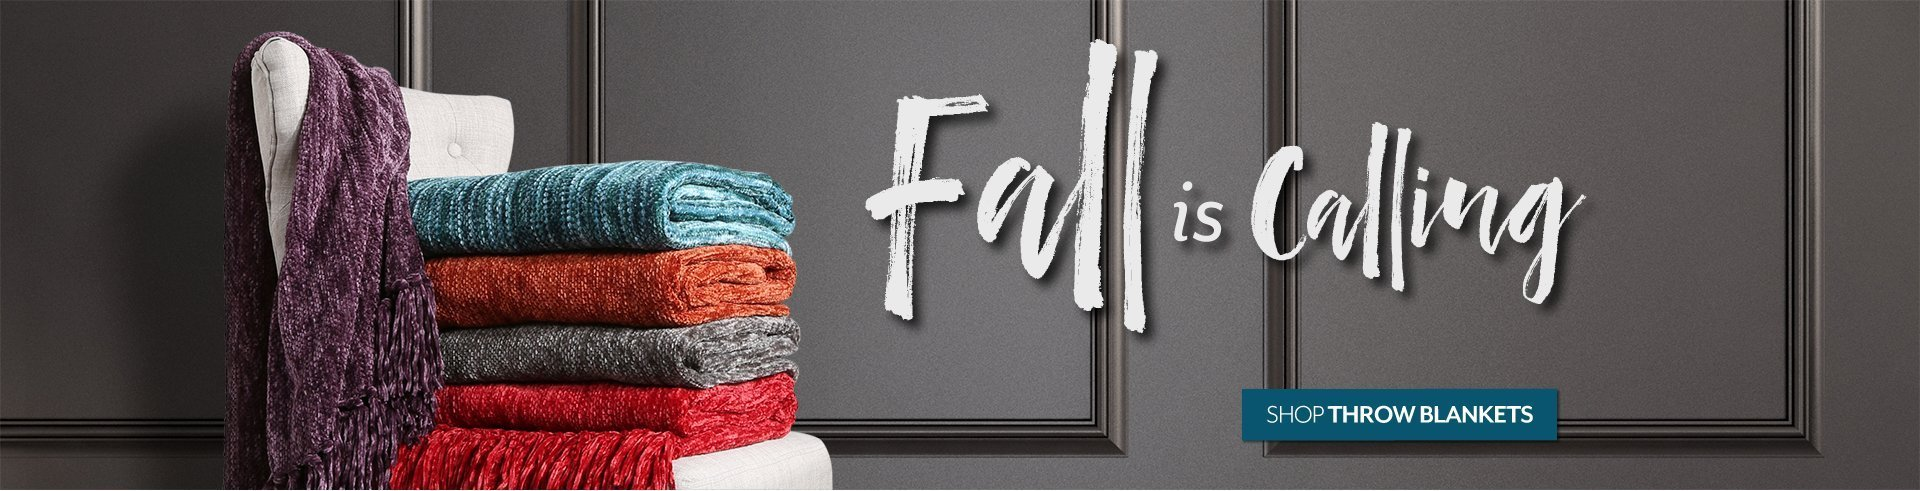 Fall is Calling - Shop Throw Blankets at Burkes Outlet